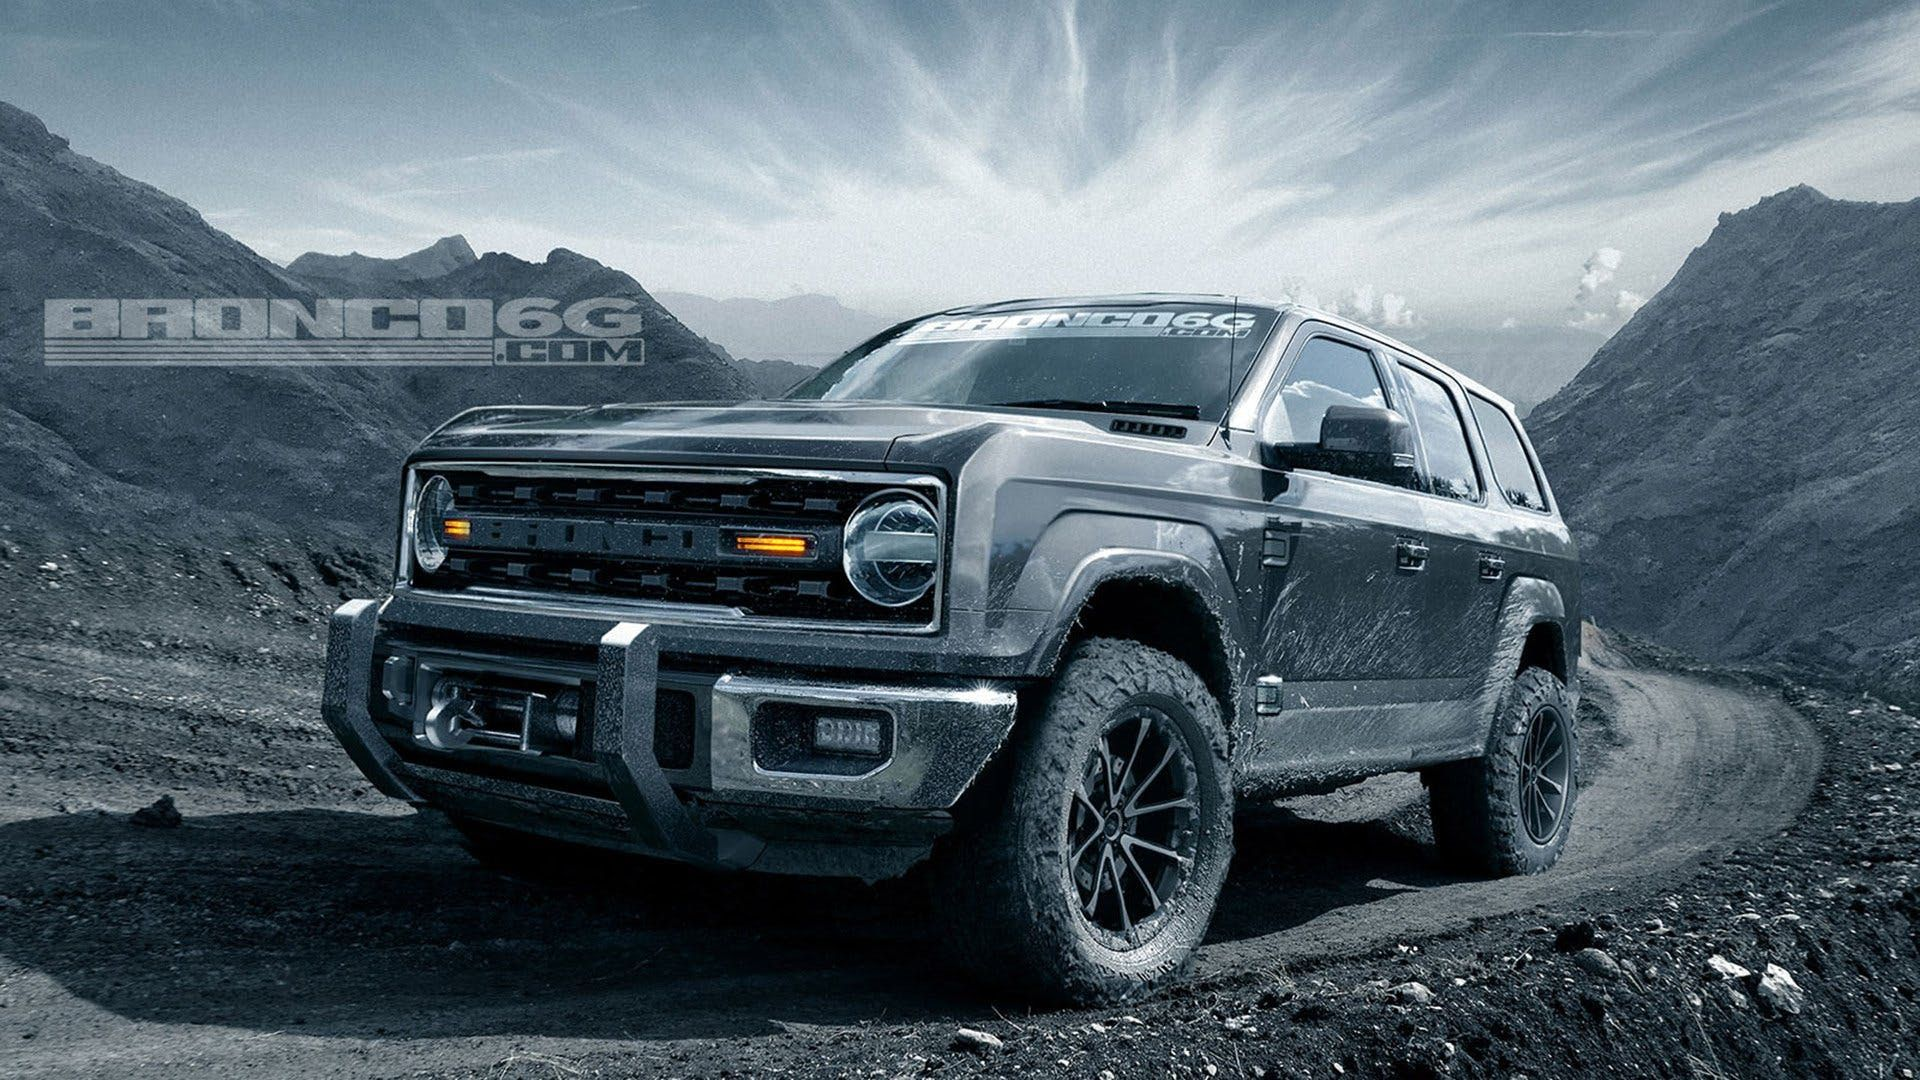 4 Door 2020 Ford Bronco Concept Isn T Real Still Awesome Regardless Ford Bronco Ford Bronco 4 Door 2019 Ford Bronco